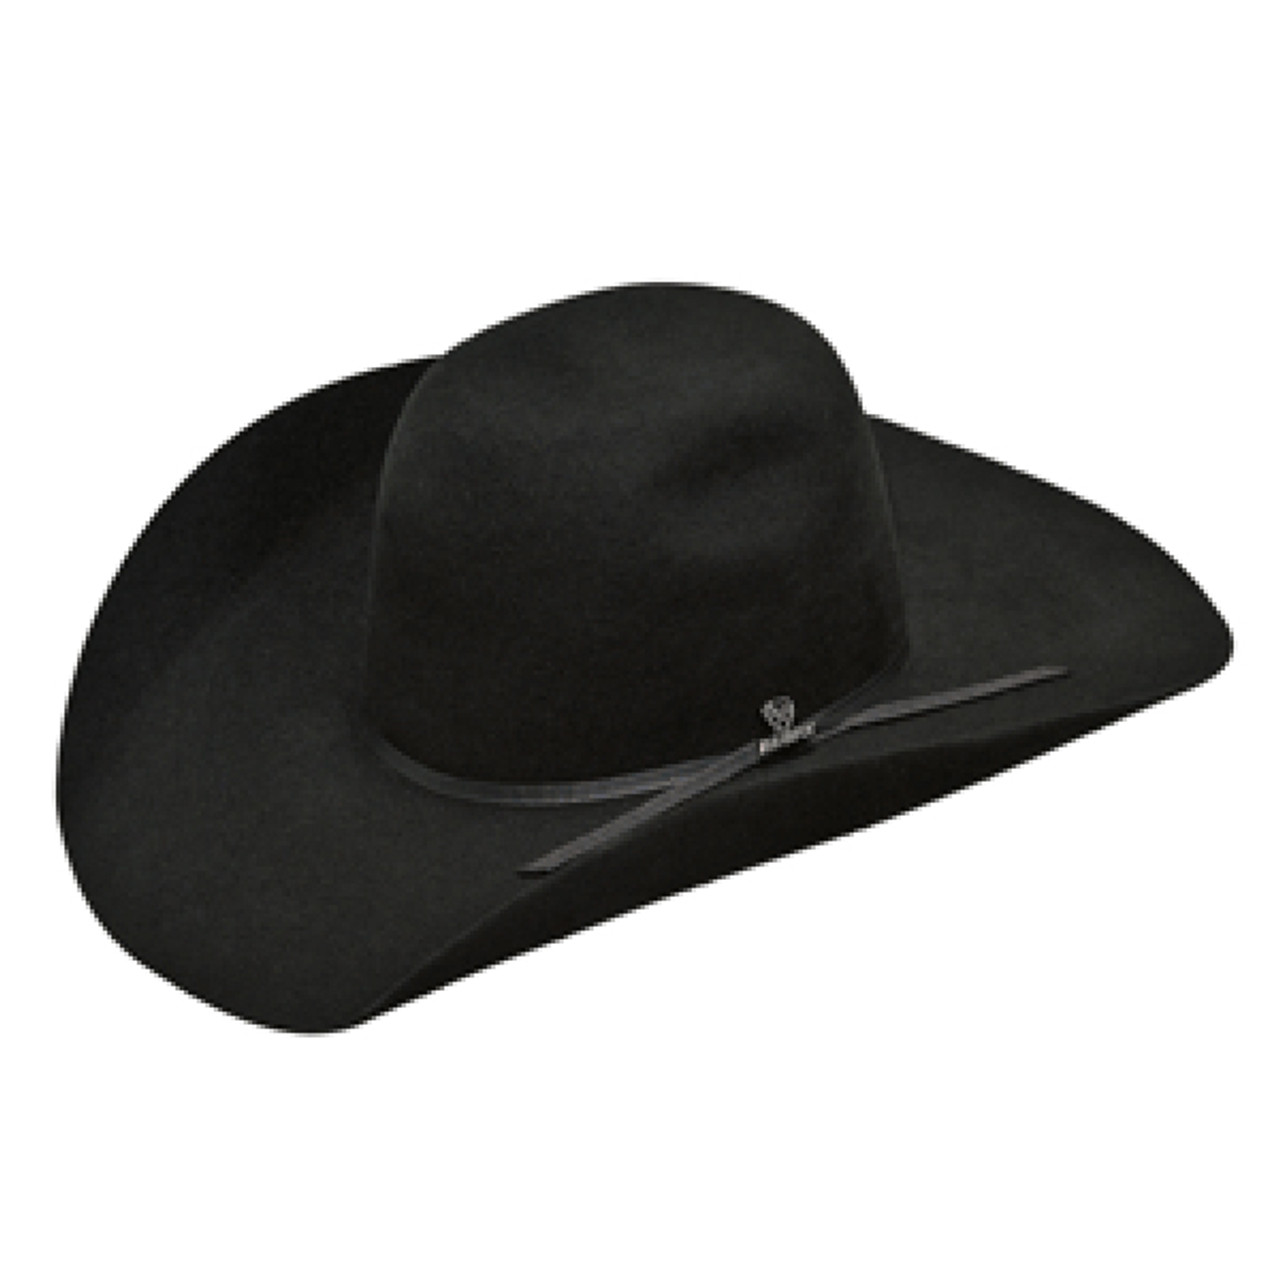 0d170a9356e ARIAT BLACK 2X WOOL PUNCHY CROWN FELT HAT A7520401 - Jackson s Western